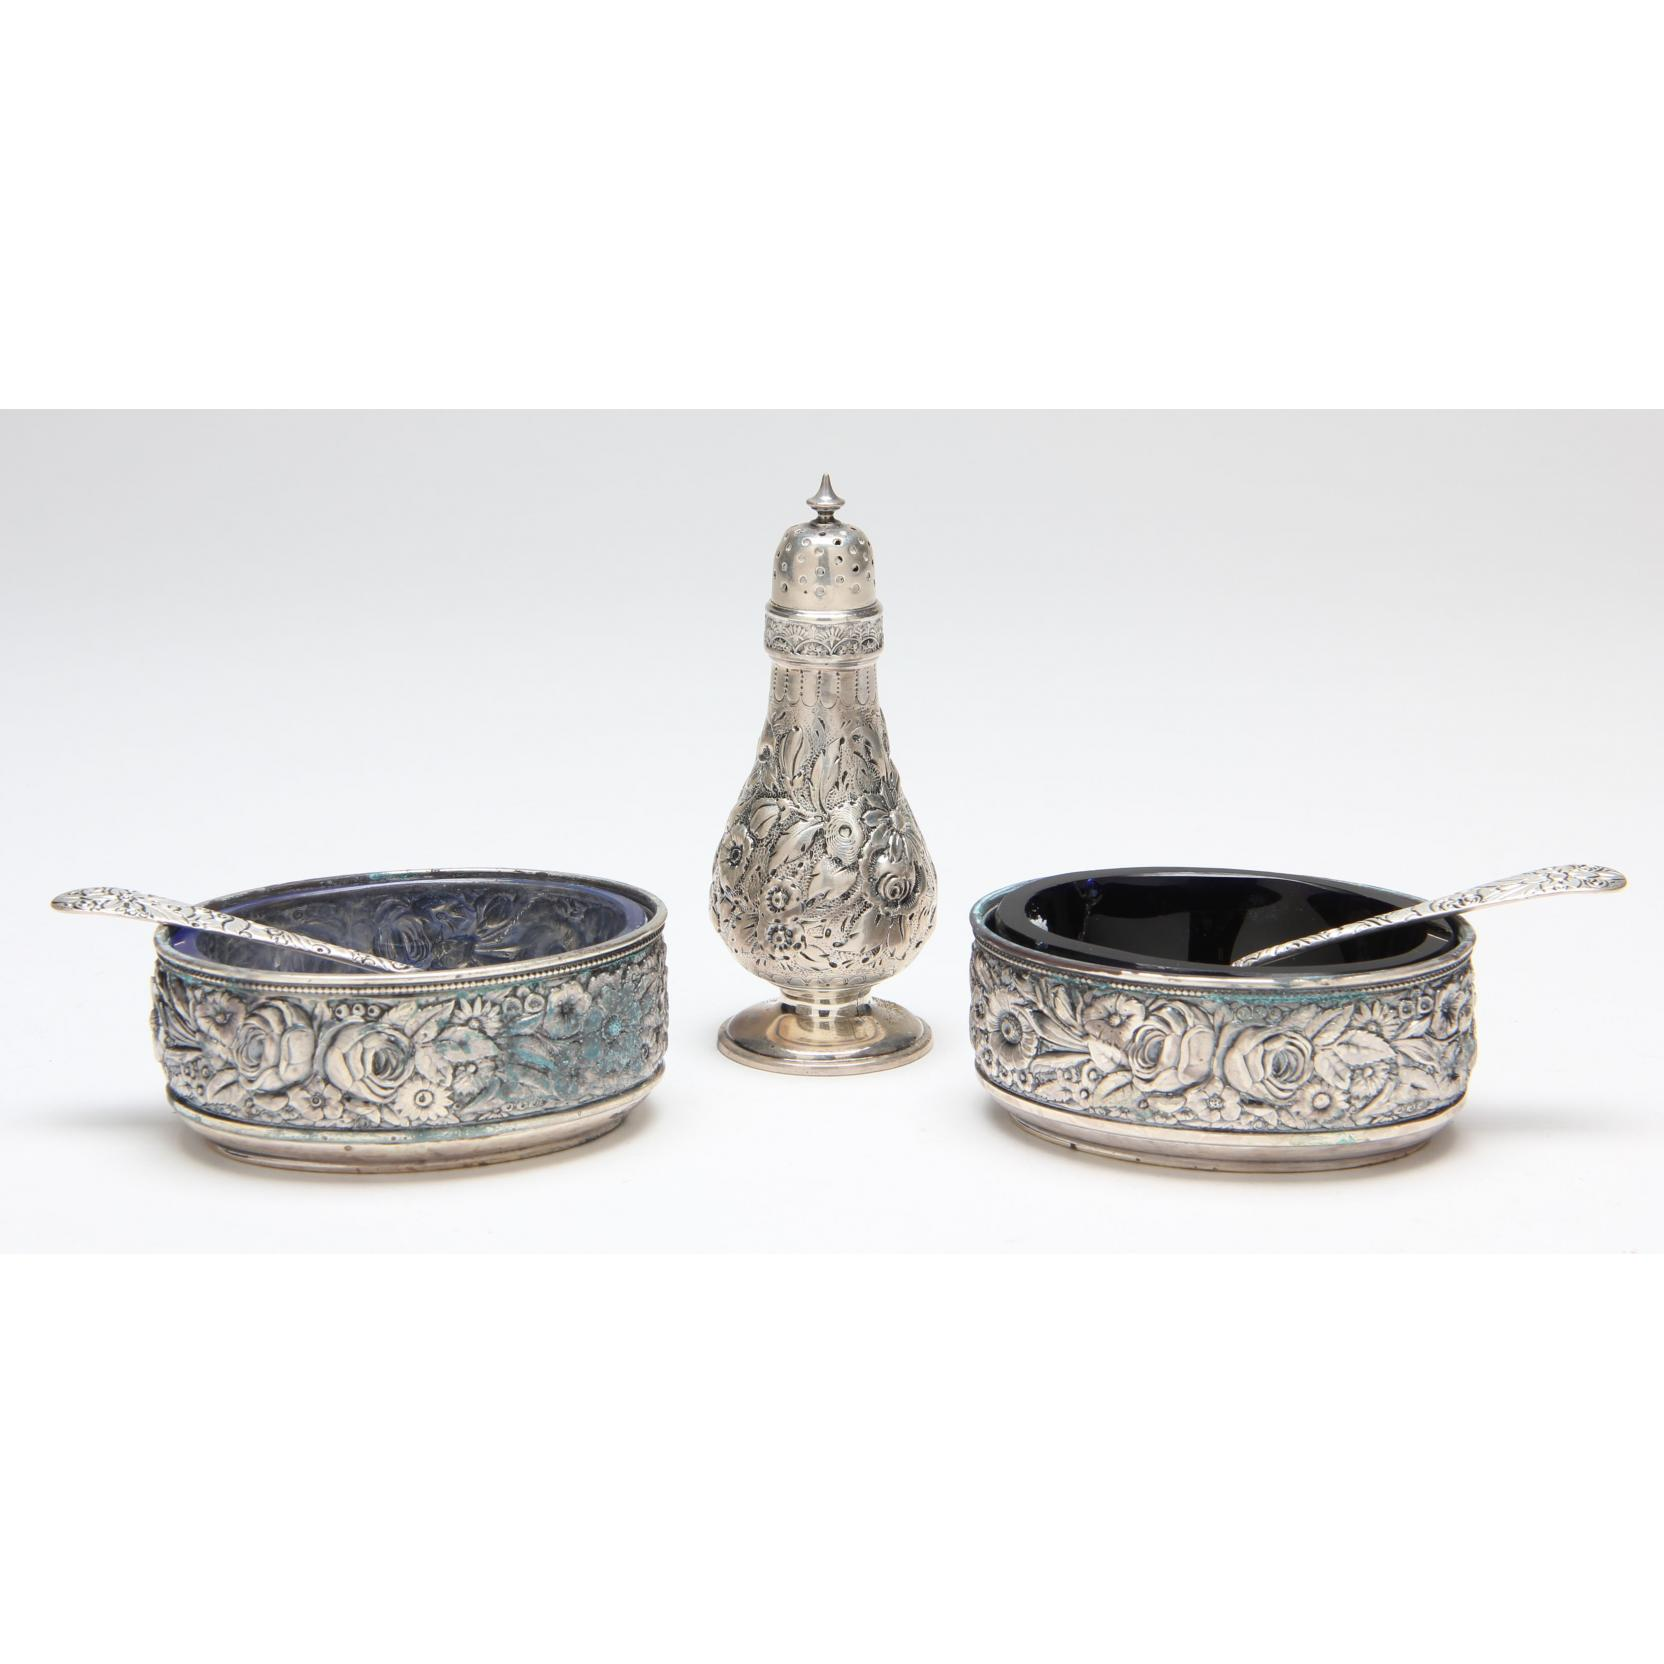 american-sterling-silver-repousse-tablewares